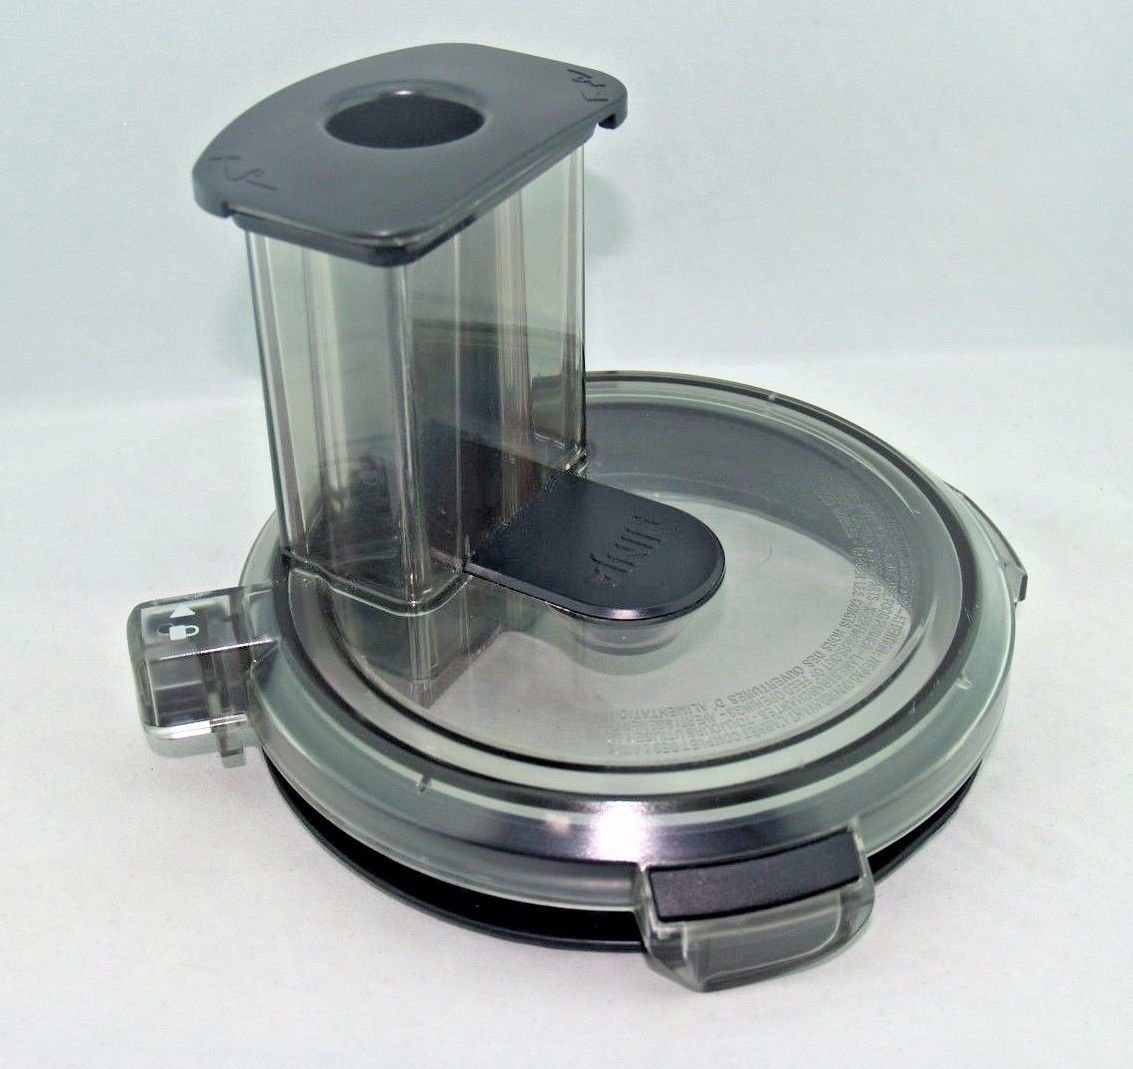 Ninja Blender Feed Chute Lid and Pusher for BL773CO 1500w Mega Kitchen System US STOCK